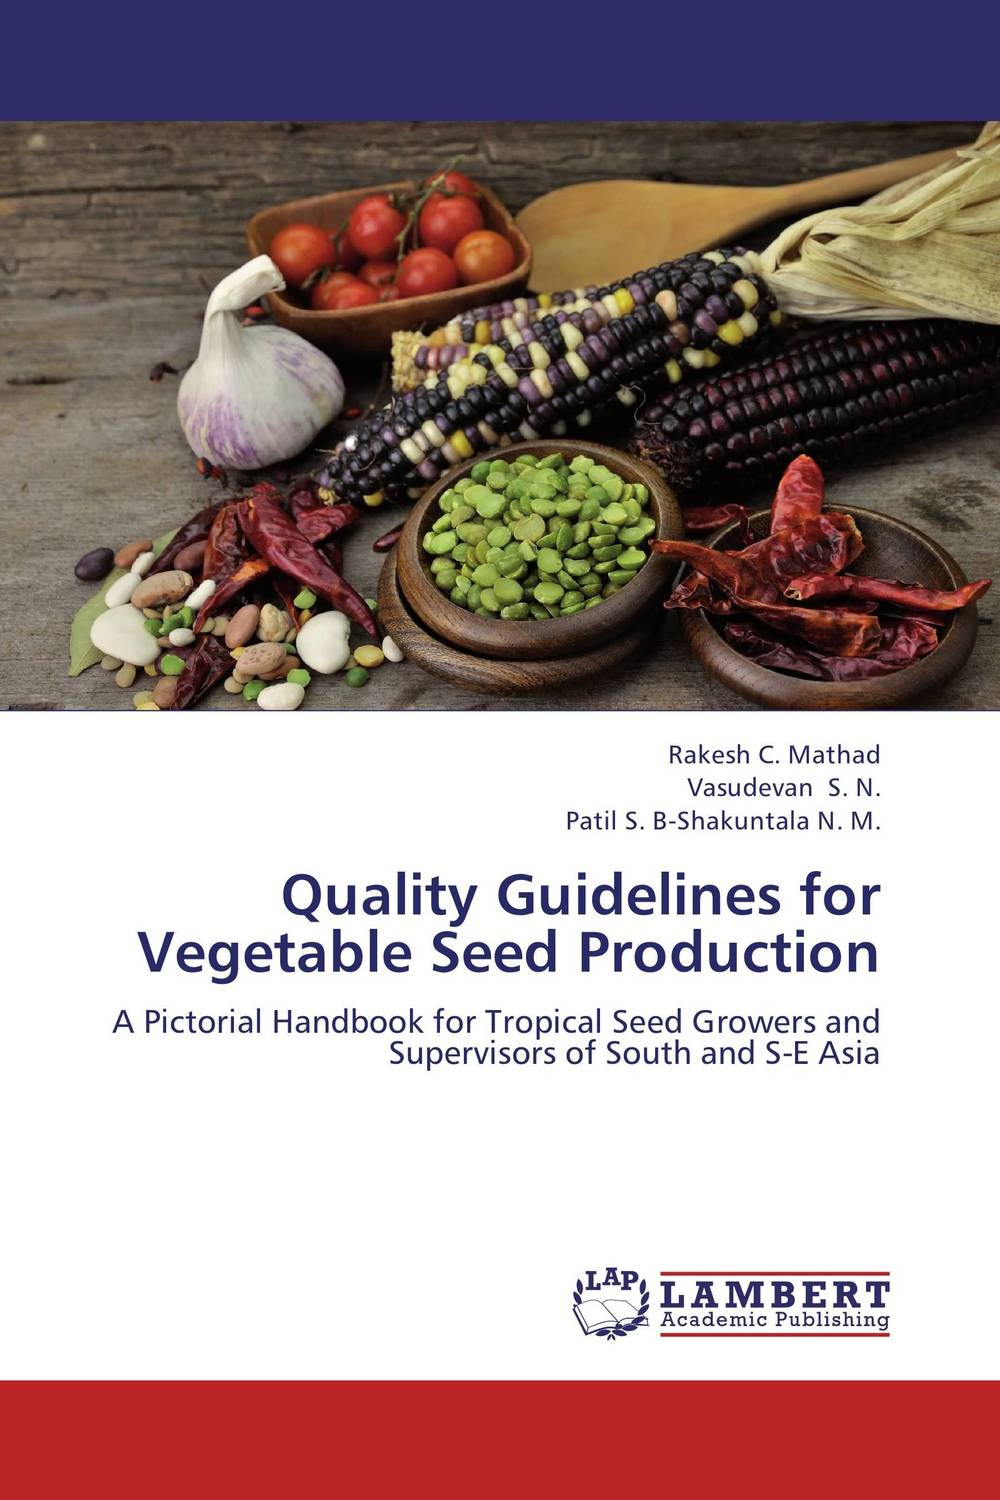 Quality Guidelines for Vegetable Seed Production seed dormancy and germination